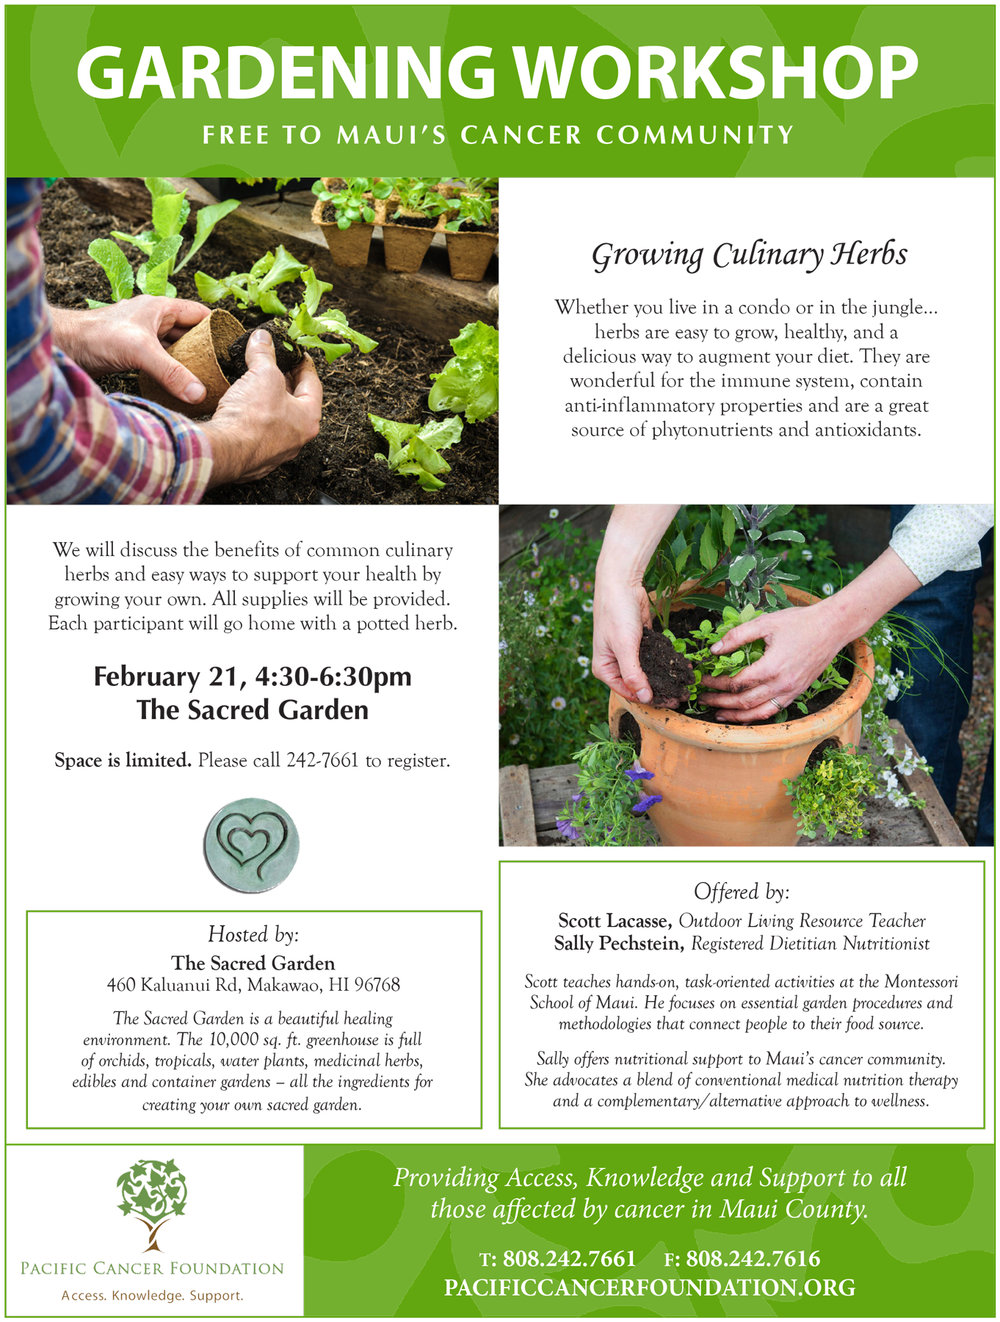 Gardening-Workshop-Flyer.jpg